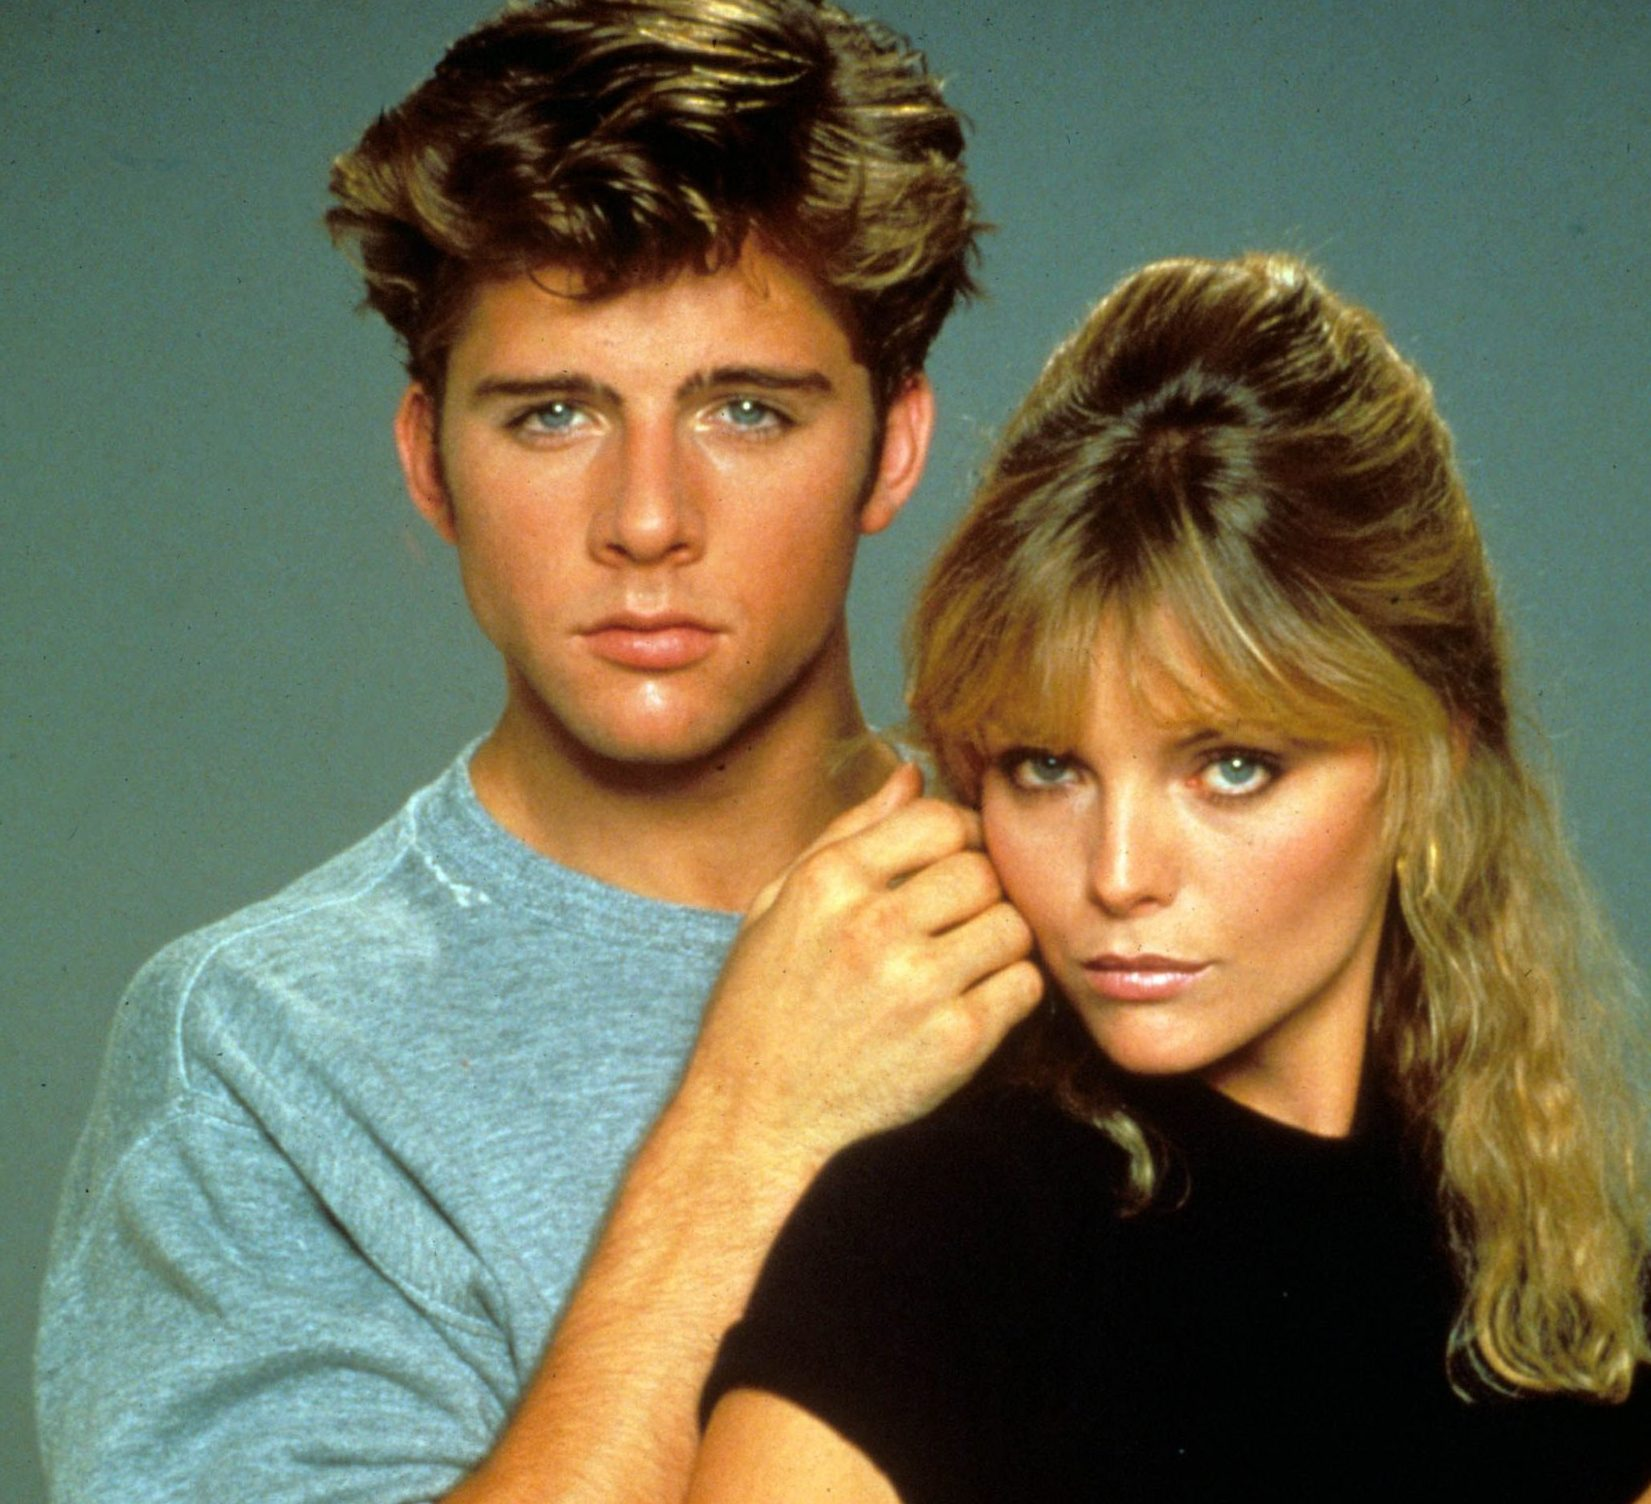 movies grease 2 still 3 scaled e1621248562896 Watch: Incredibly Non-PG Moment Spotted In Grease 2 After 40 Years